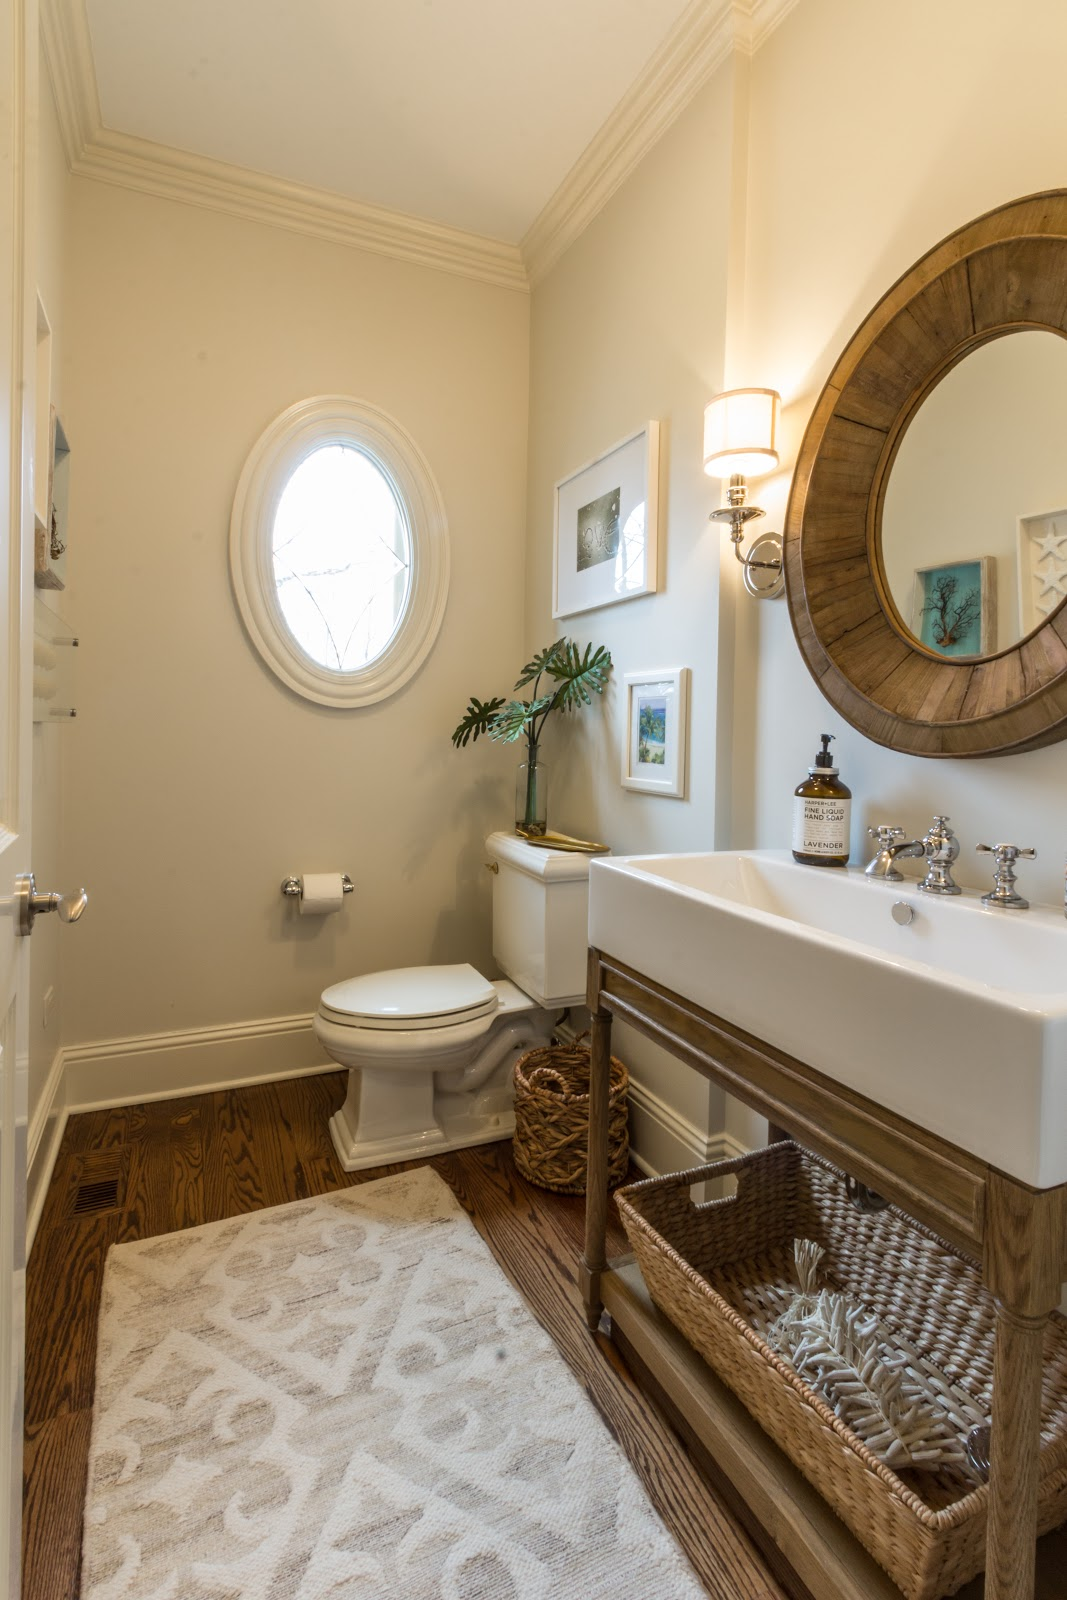 Powder room bath with apron sink and round mirror to match the round window. Wood and wicker adds texture and brings the natural world into the neutral, minimalist space.